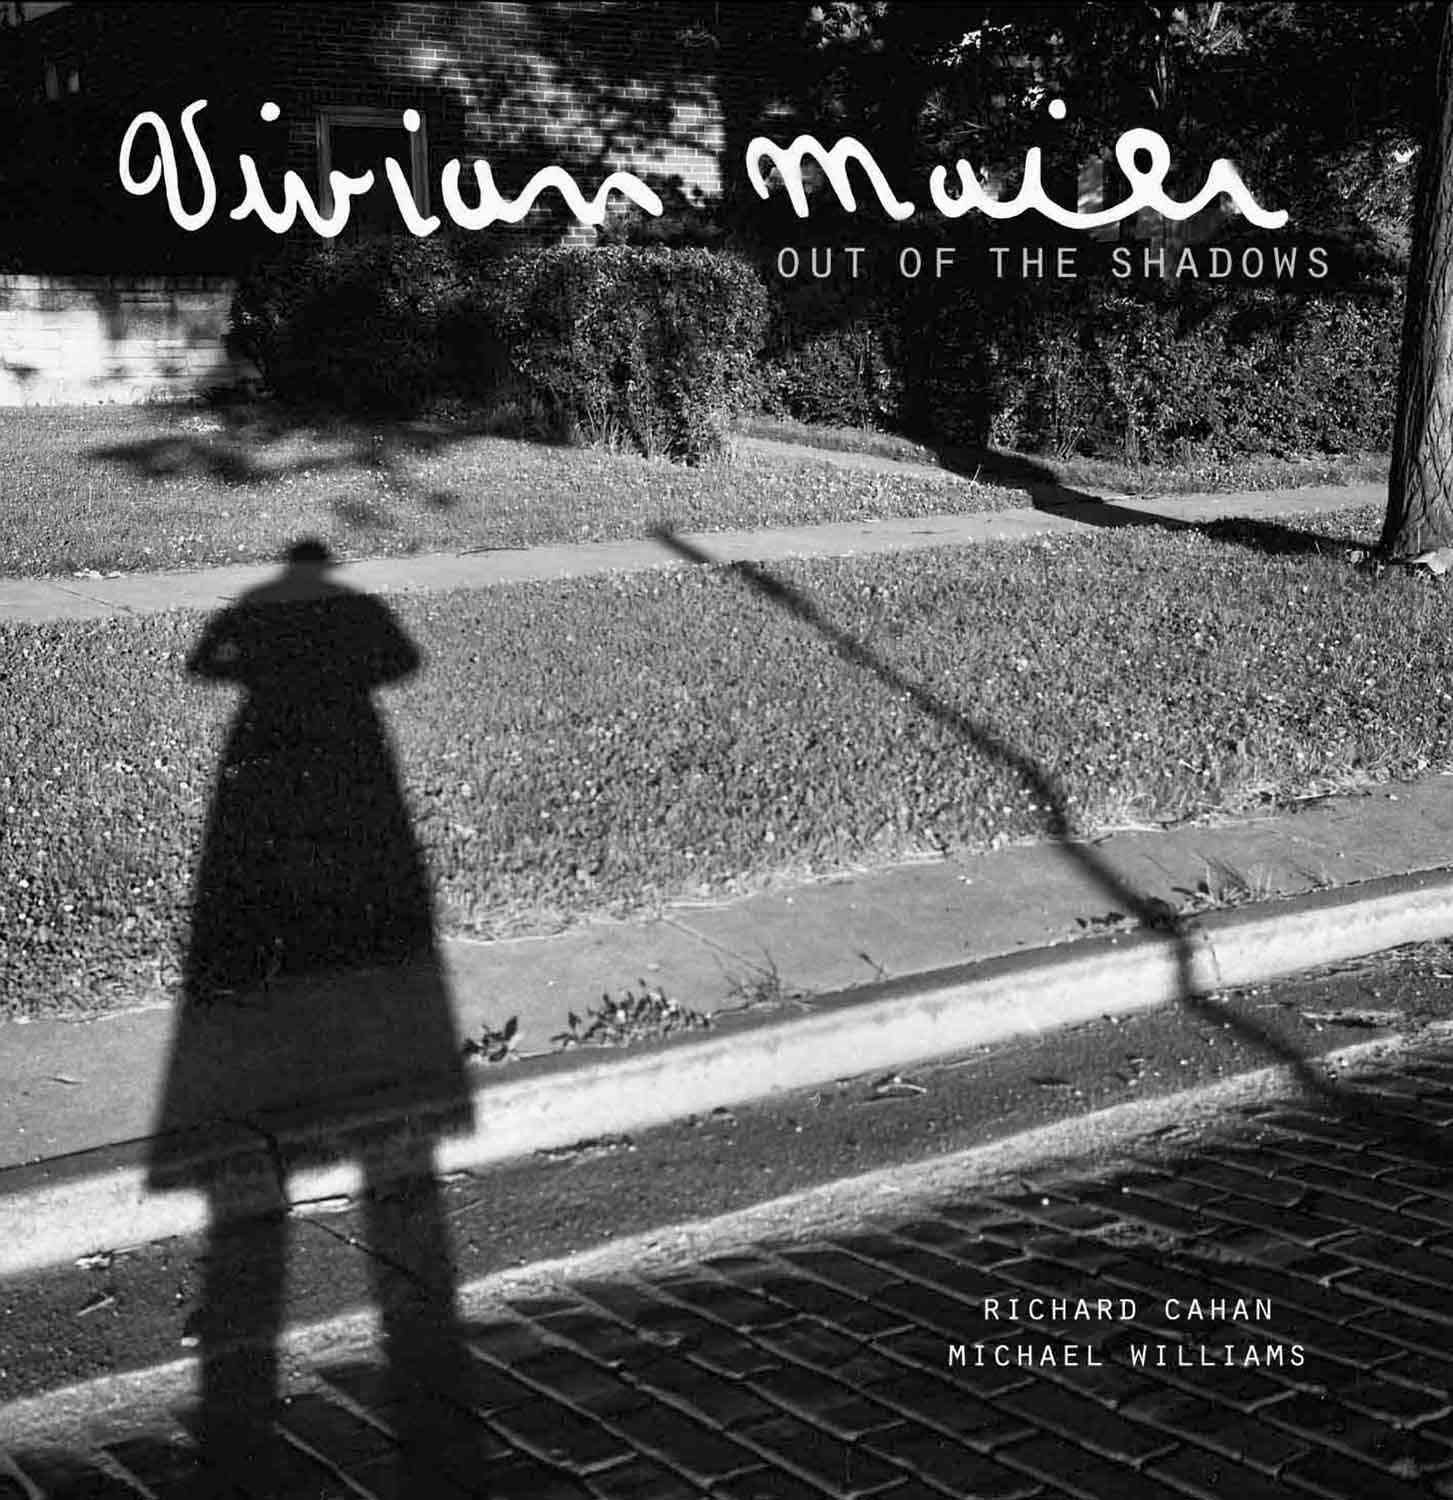 Vivian Maier: Out of the Shadows (Hardcover)